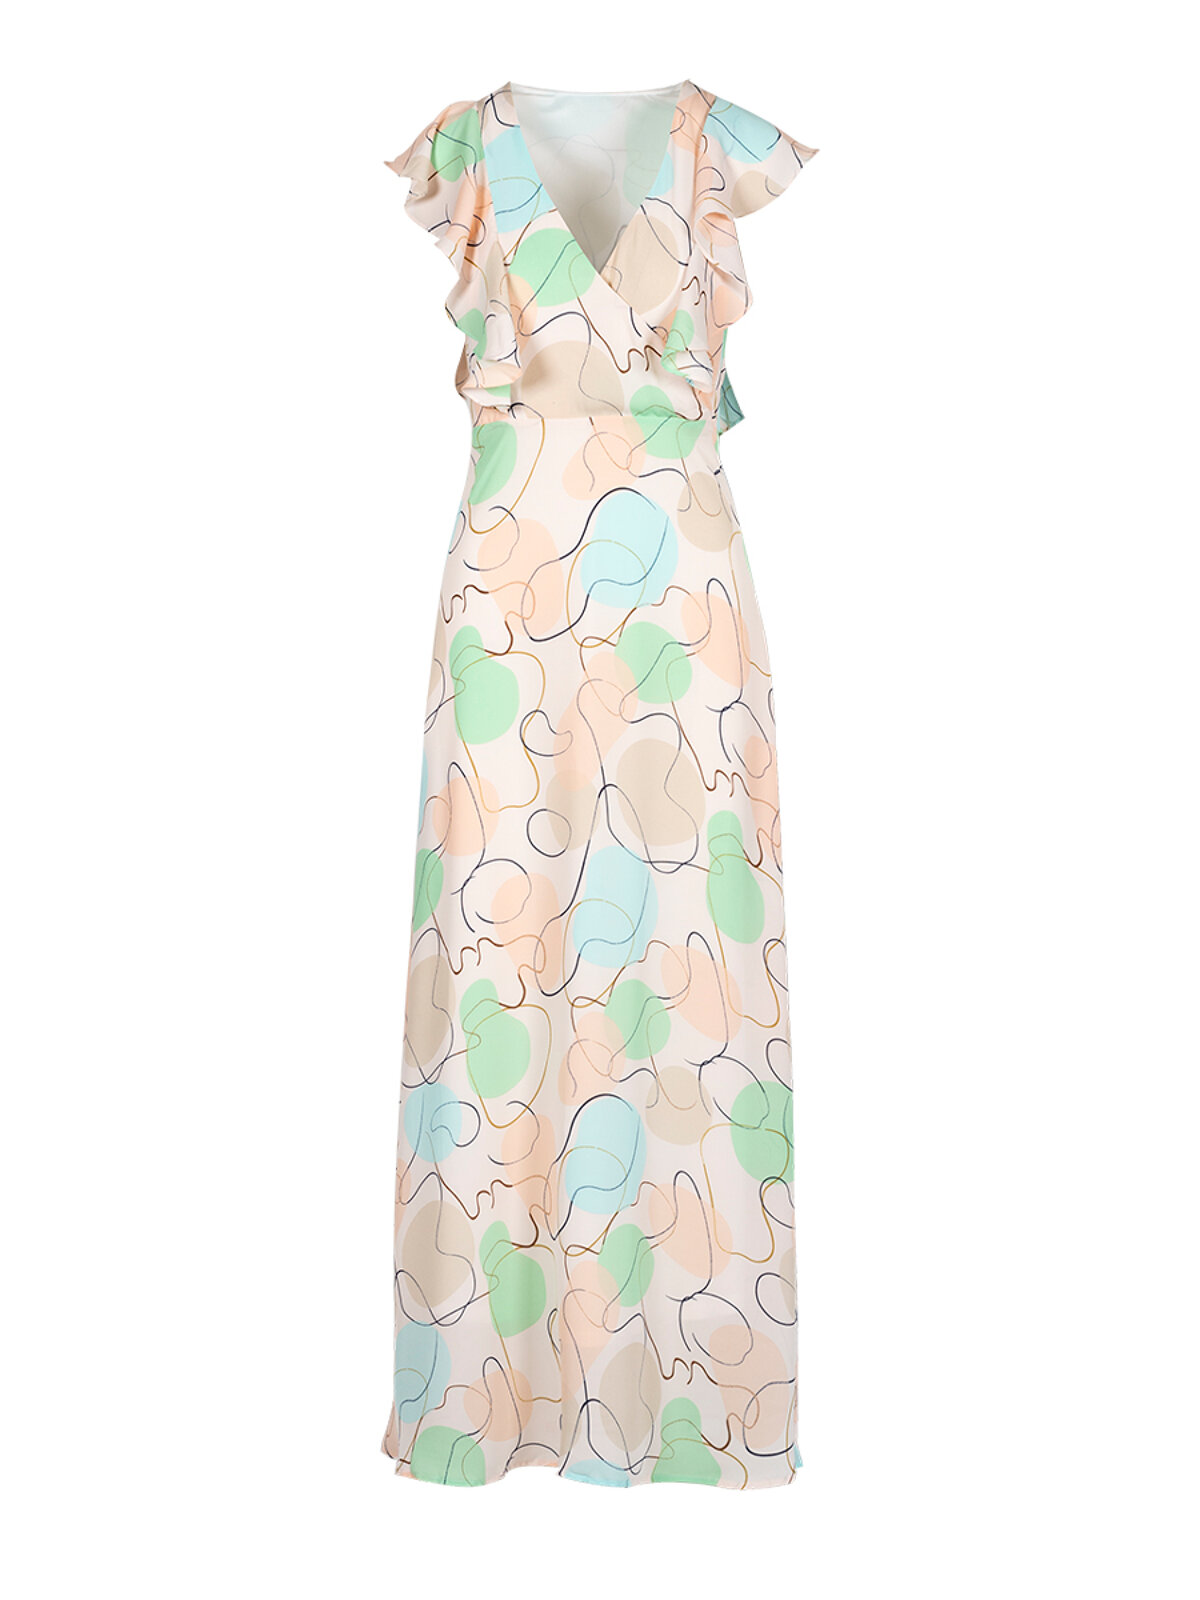 Dia Bubbly Dress - Anonyme Designers